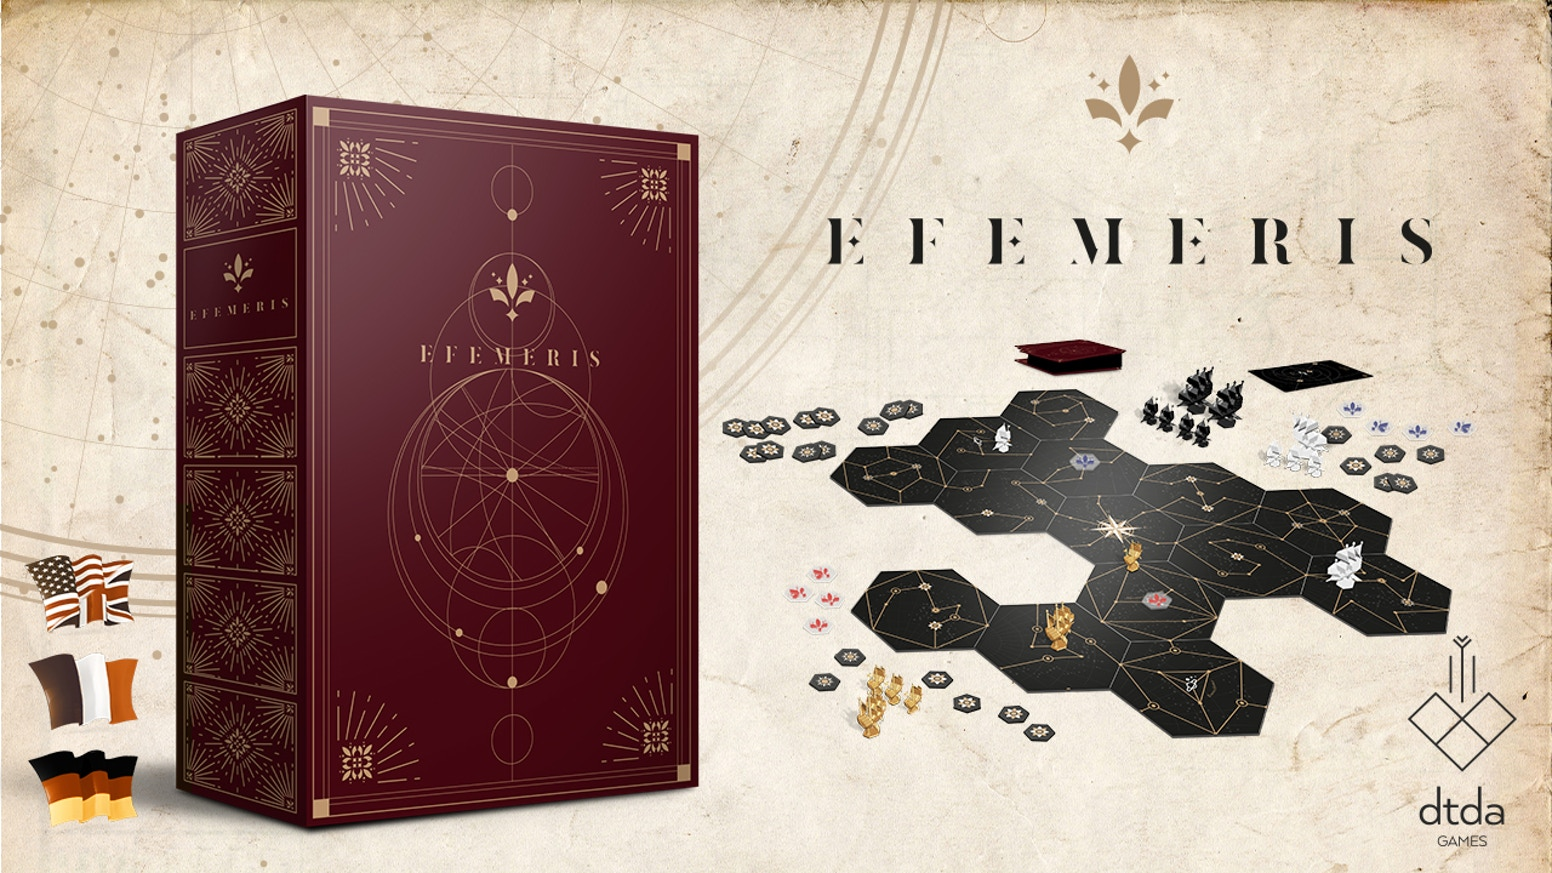 Efemeris is a strategy game, set in an uchronic Age of Exploration